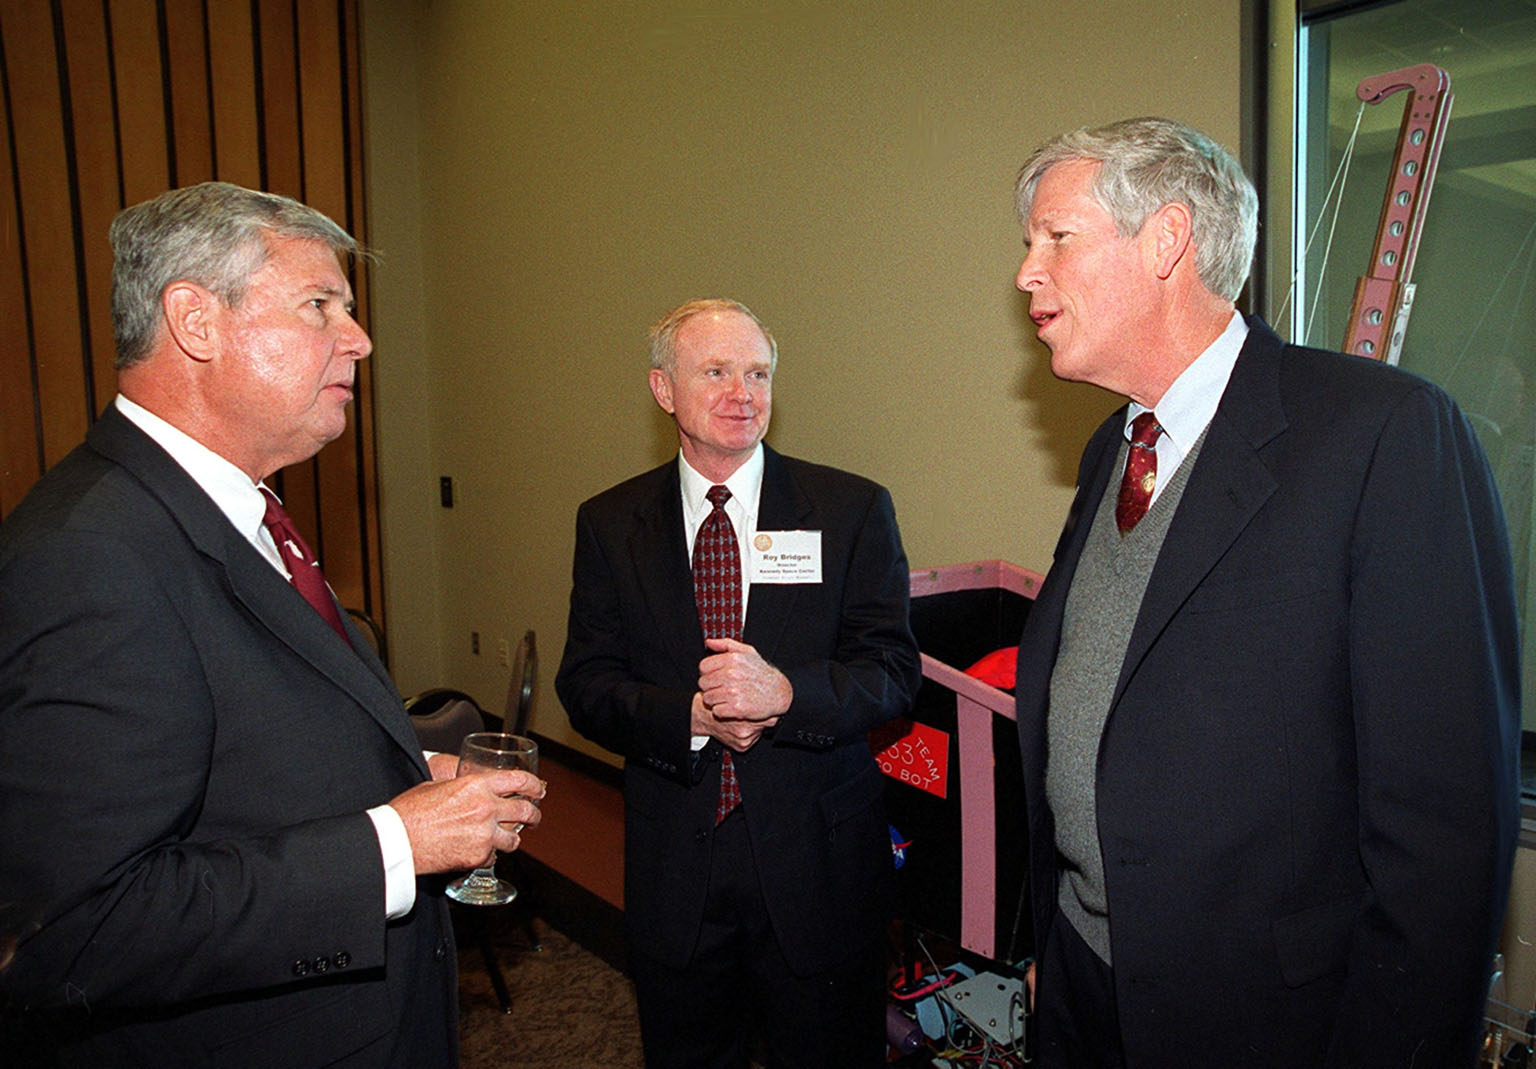 Senator Bob Graham (left), Center Director Roy Bridges (center) and Senator Connie Mack (right) take a break during the First Florida Space Summit, held at the Kennedy Space Center Visitor Complex. The summit featured key state officials and aerospace companies discussing the future of space as it relates to the State of Florida. Moderated by Bridges, the event also included State Senator Patsy Kurth, Representative Dave Weldon, and 45th Space Wing Commander Brig. Gen. Donald Pettit